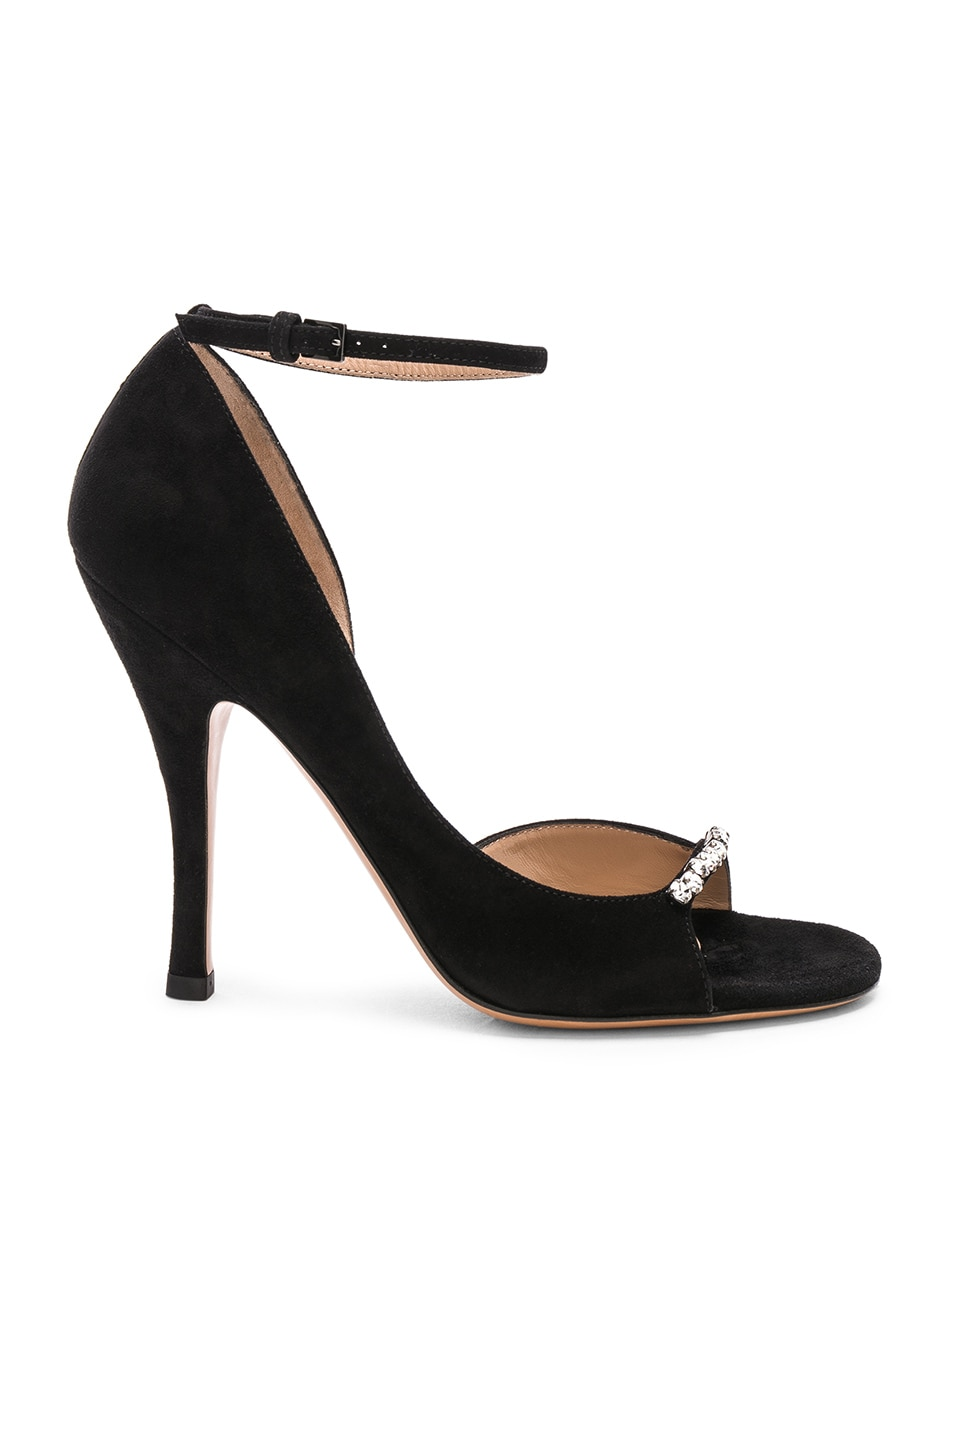 Image 1 of Valentino Suede Ringtoes Pumps in Black